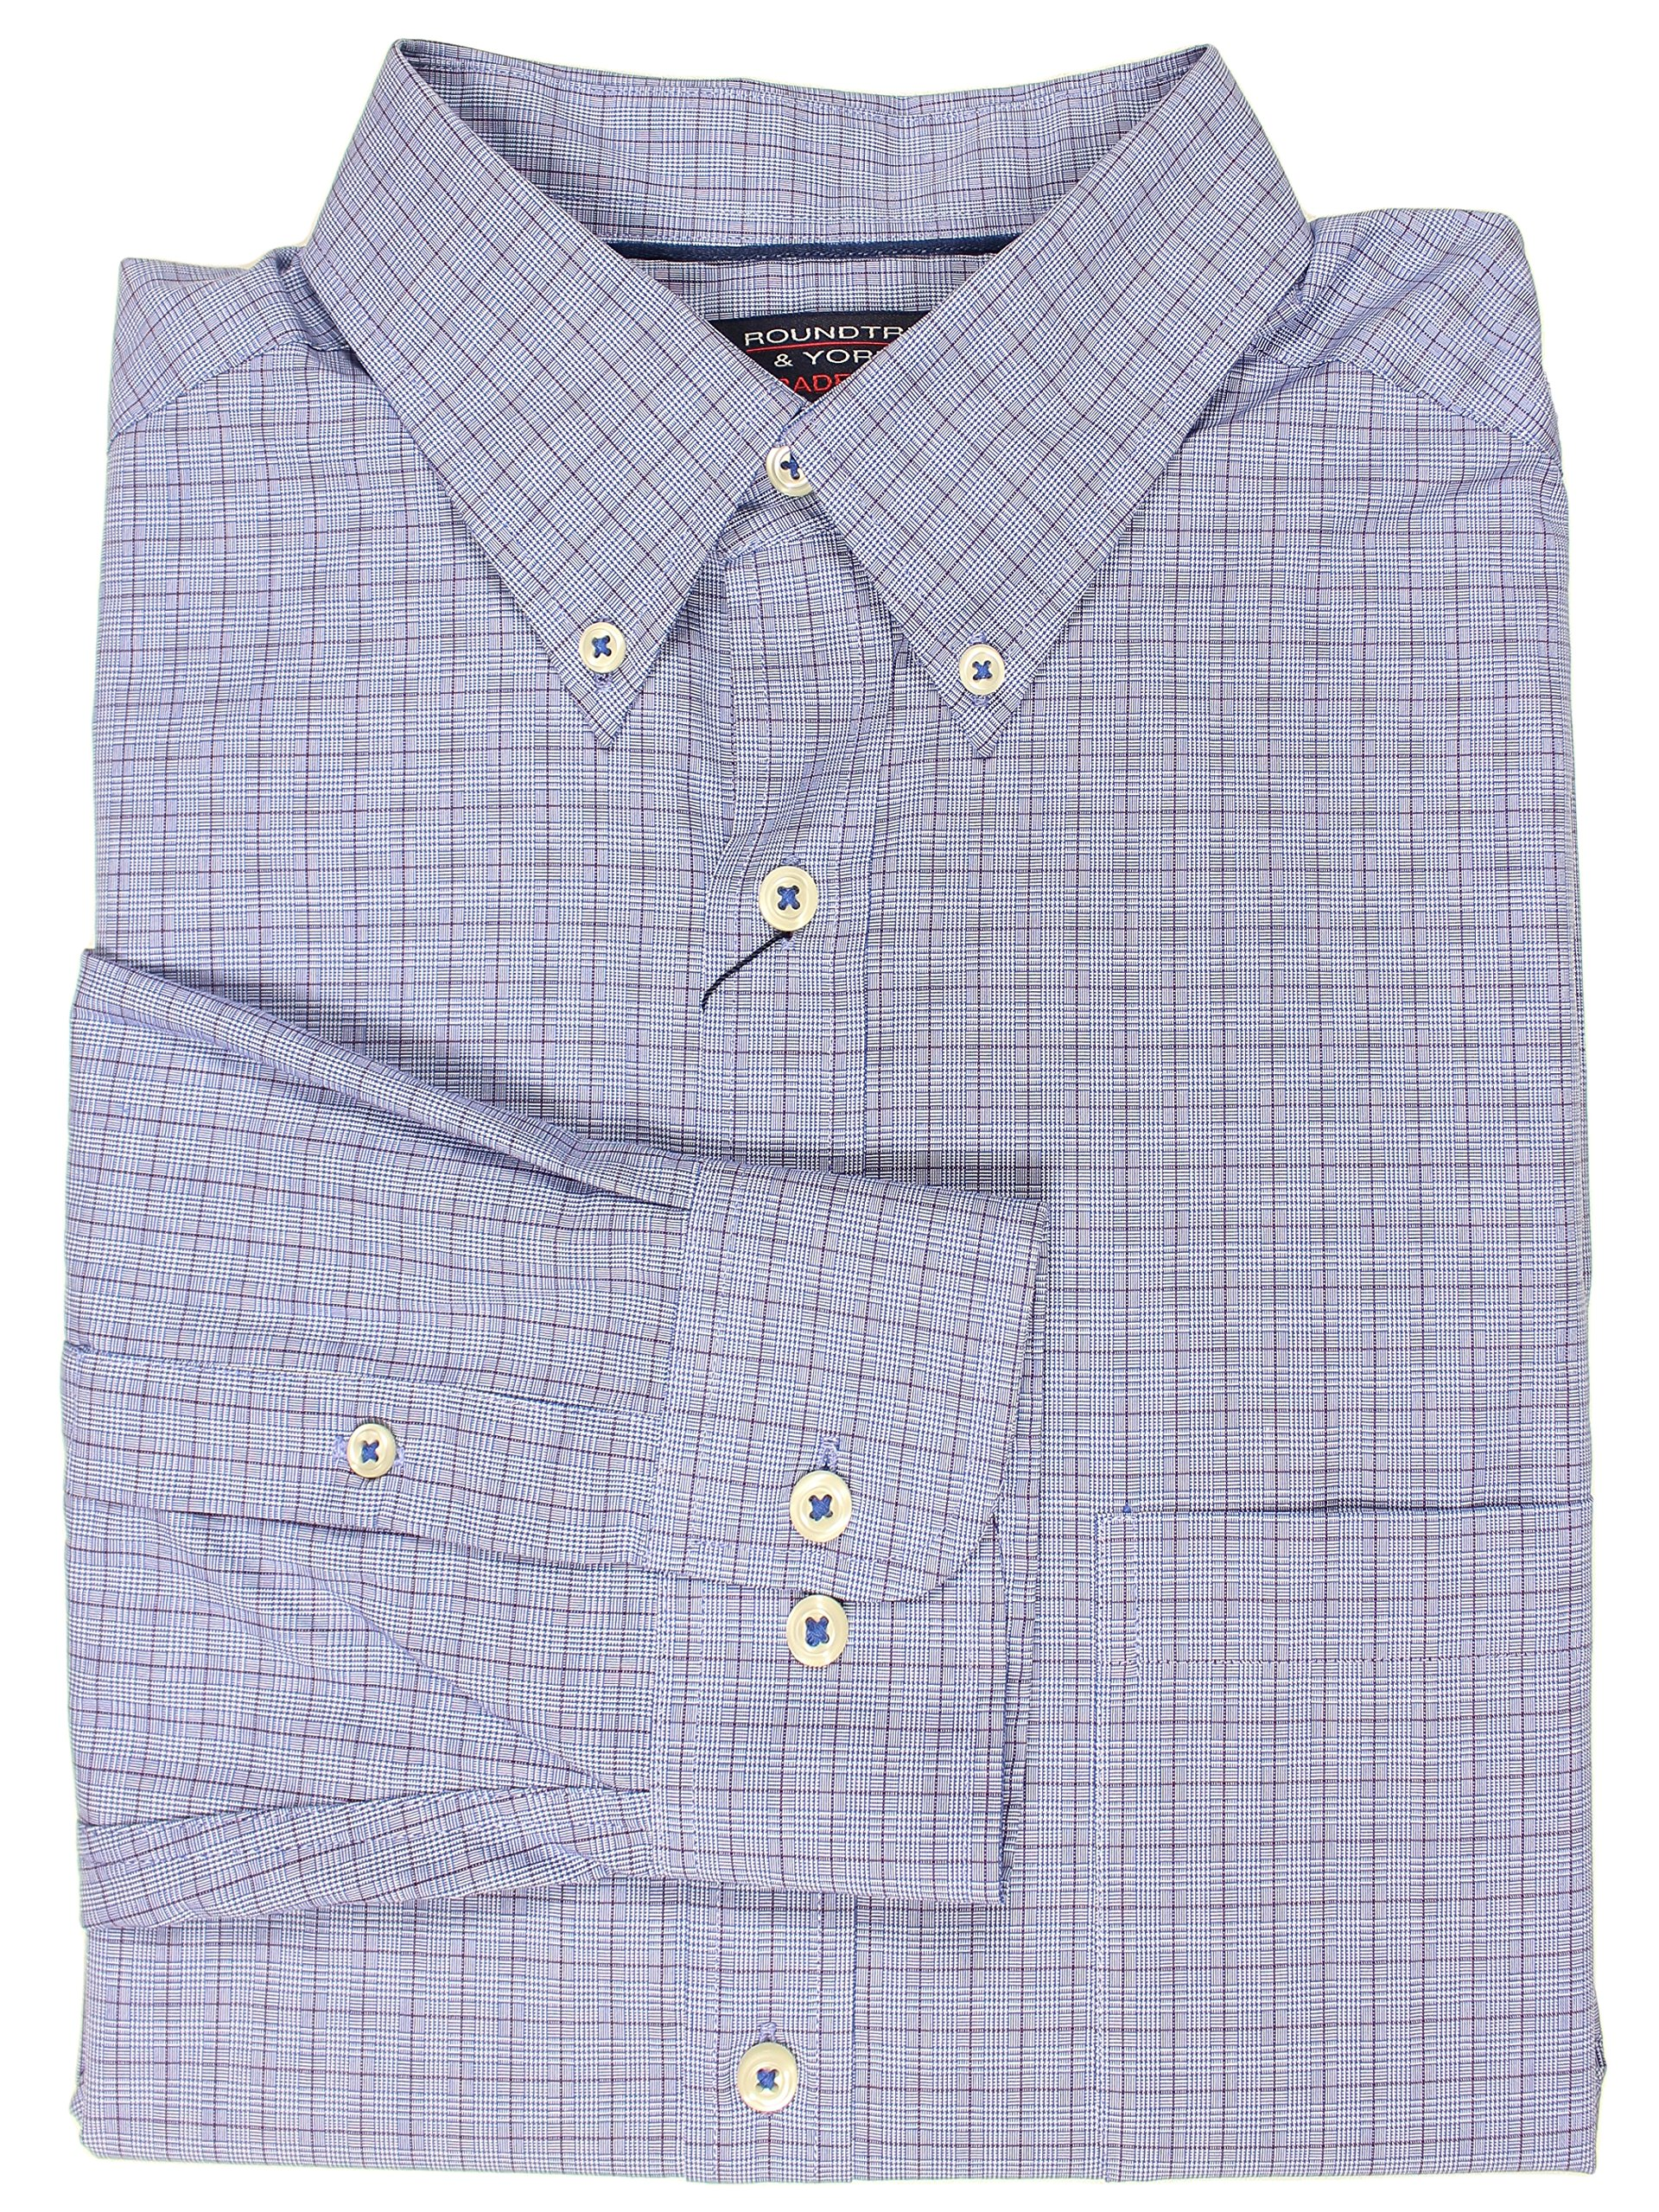 Roundtree & Yorke Trademark Collection Woven Cotton Mens Big & Tall Long Sleeve Shirt (Lt Blue/Burgundy Fine Plaid, 3X Tall)